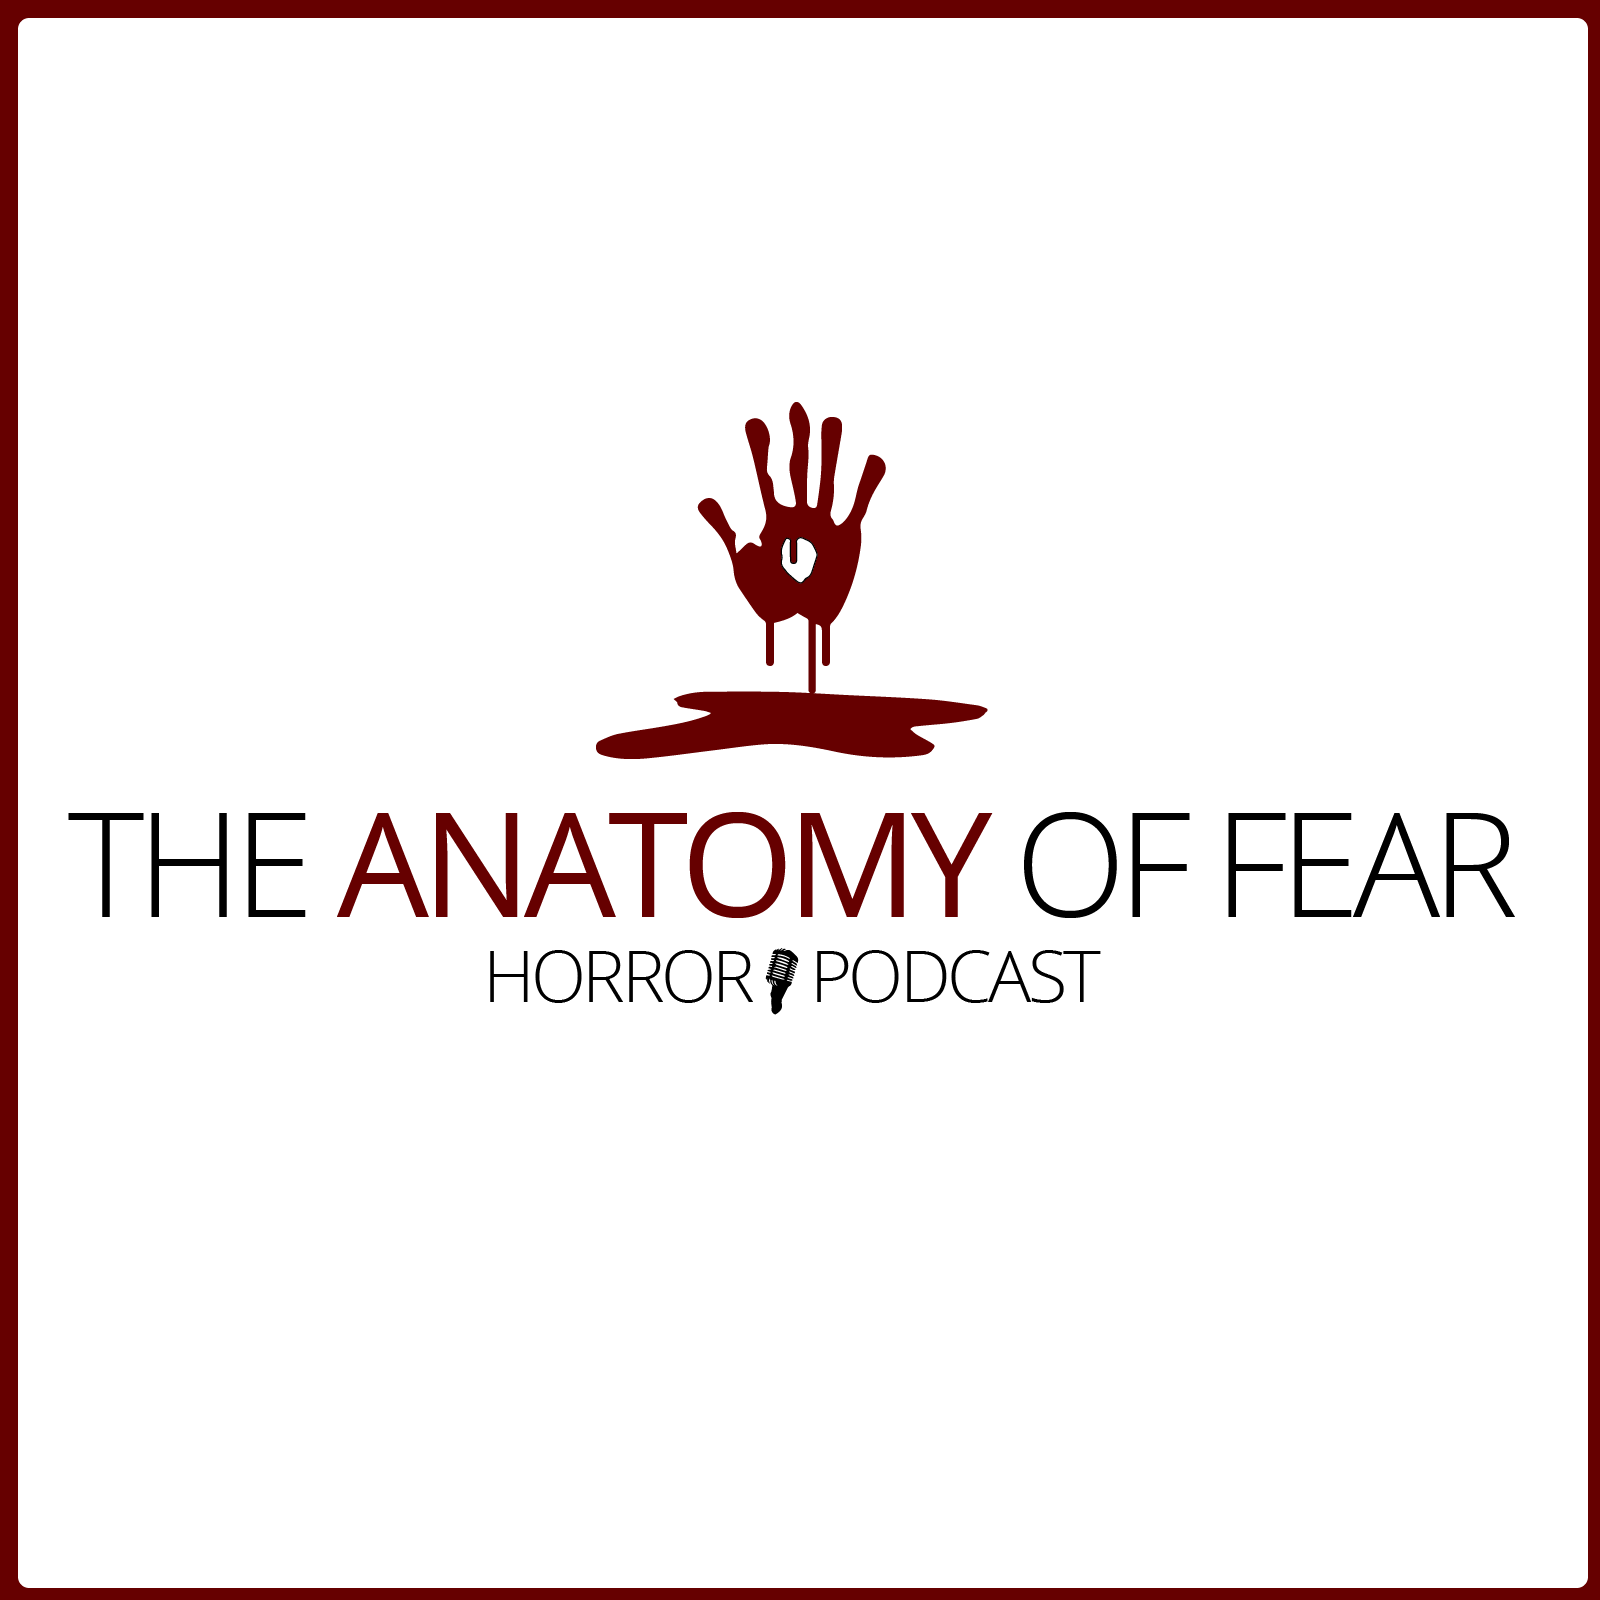 The Anatomy of Fear - Episode One: Let's Get to Know Each Other